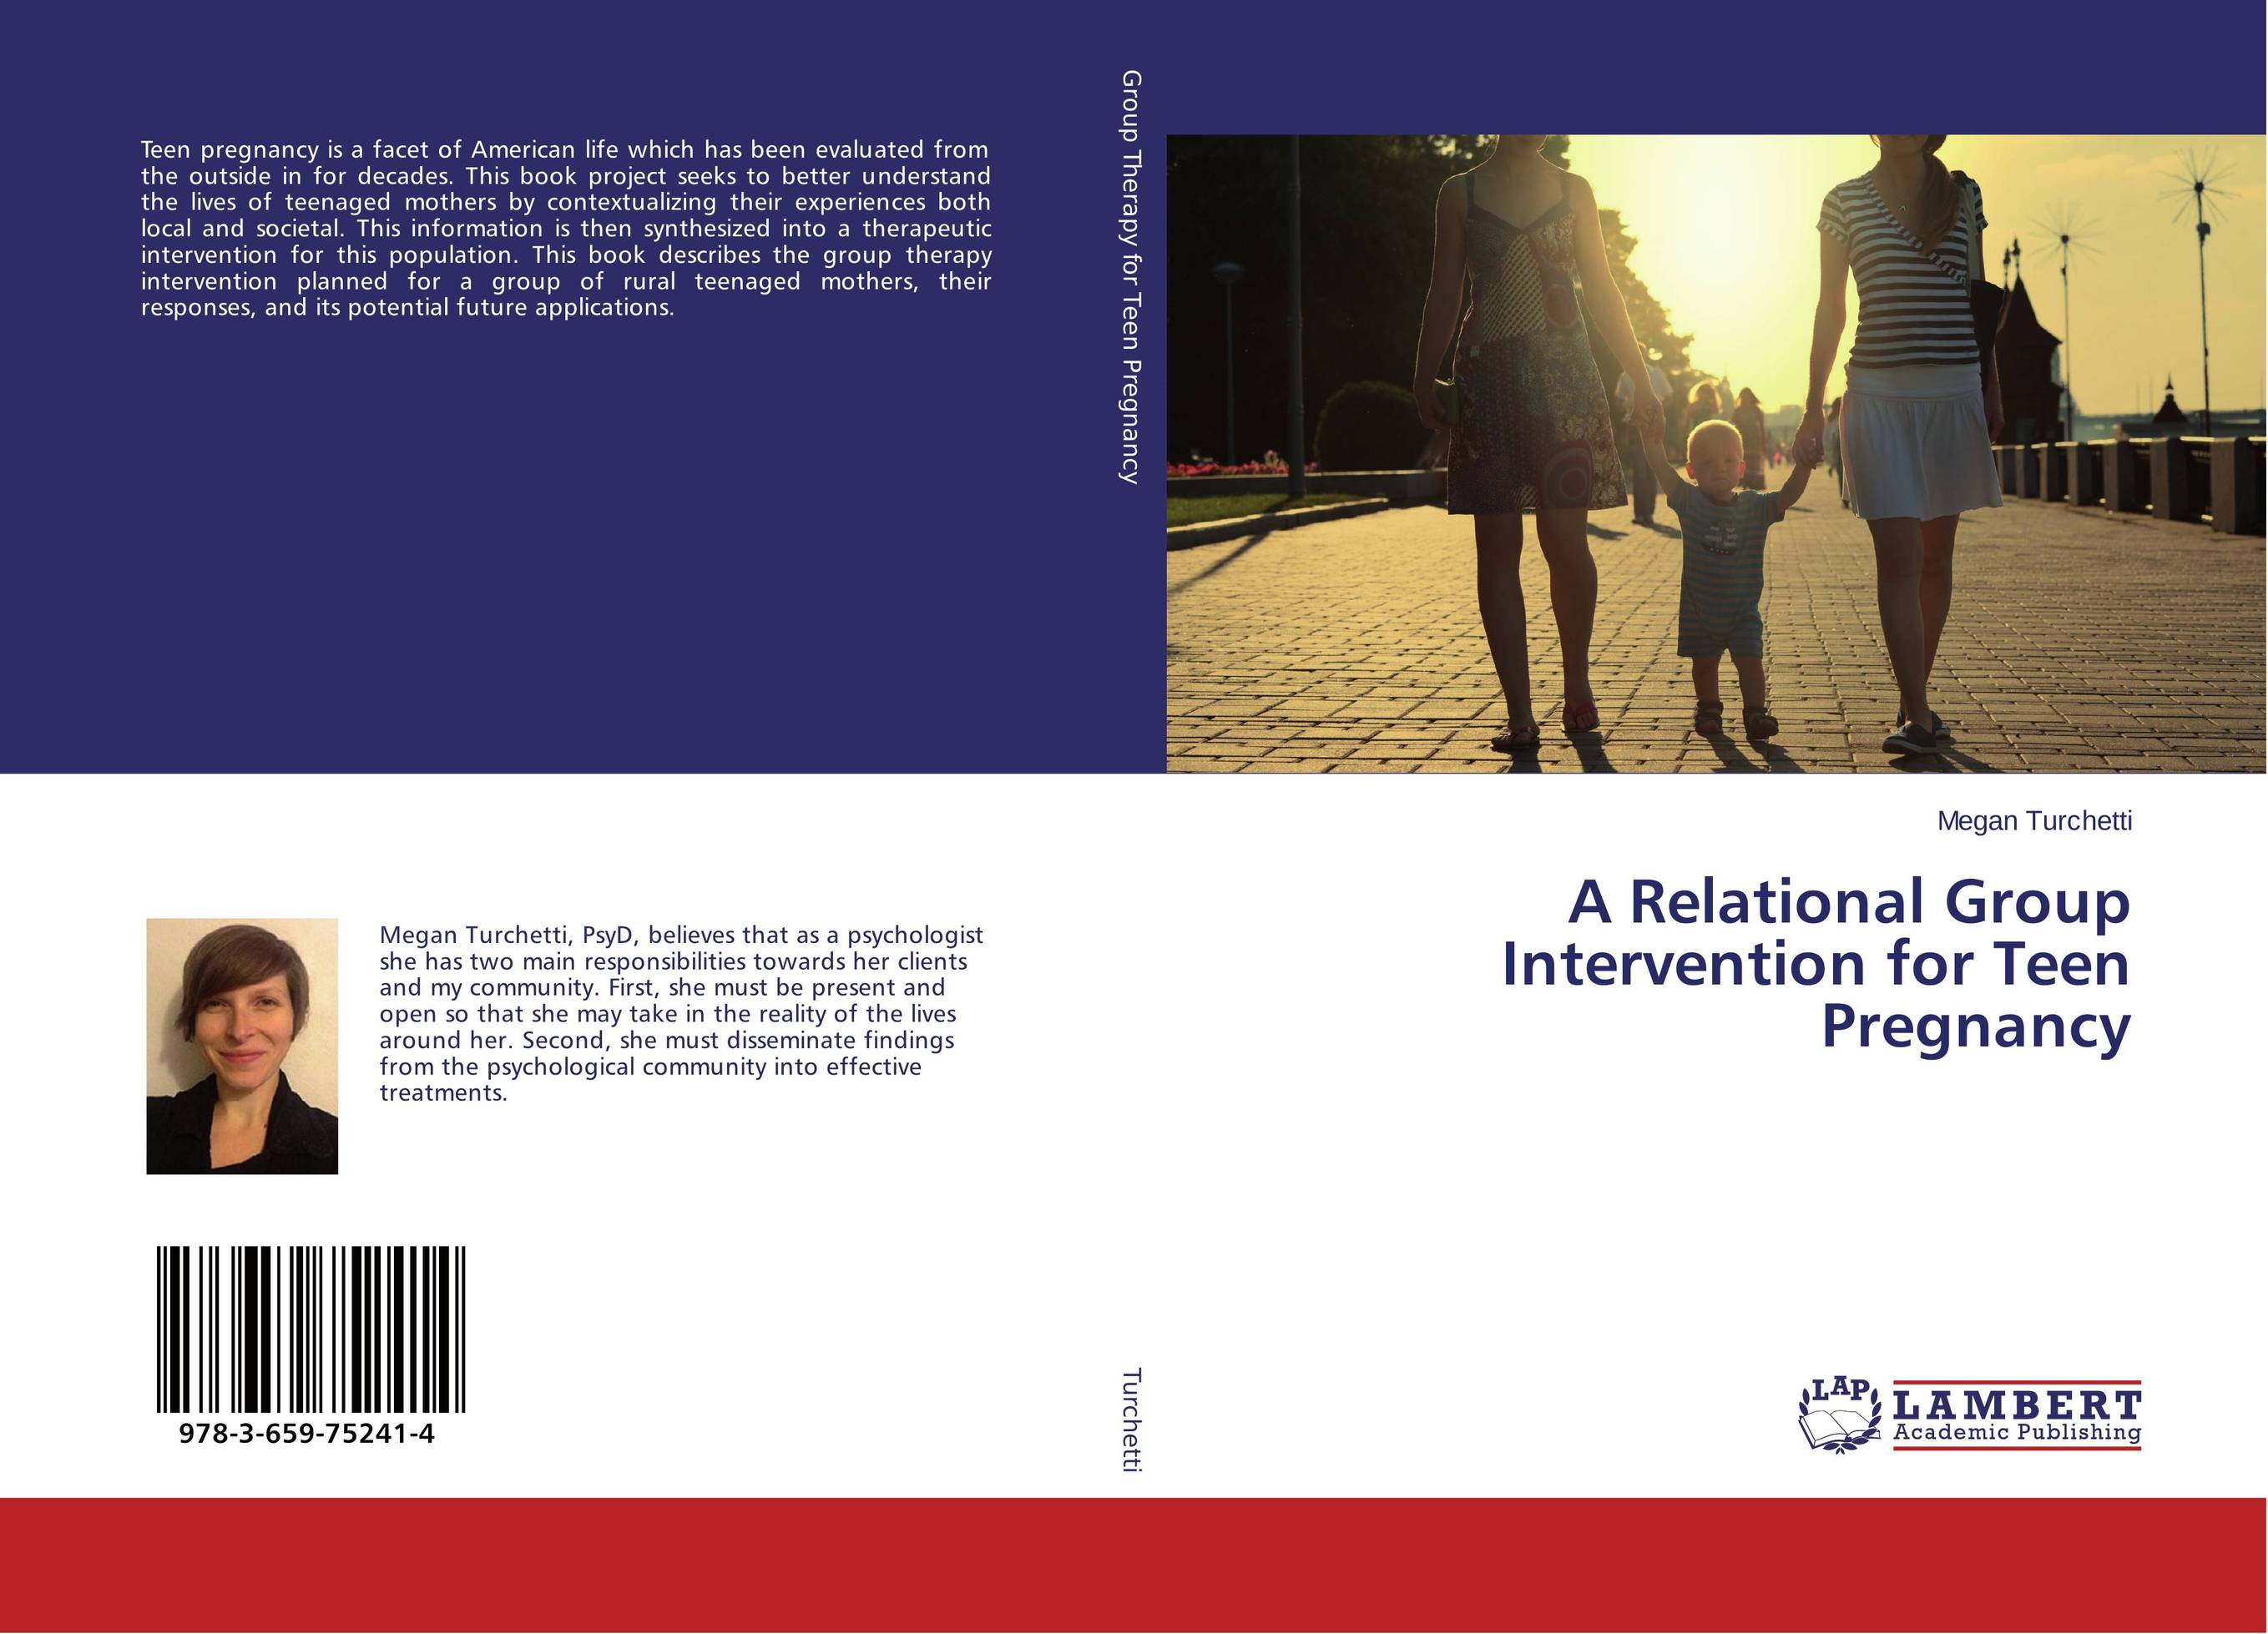 A Relational Group Intervention for Teen Pregnancy